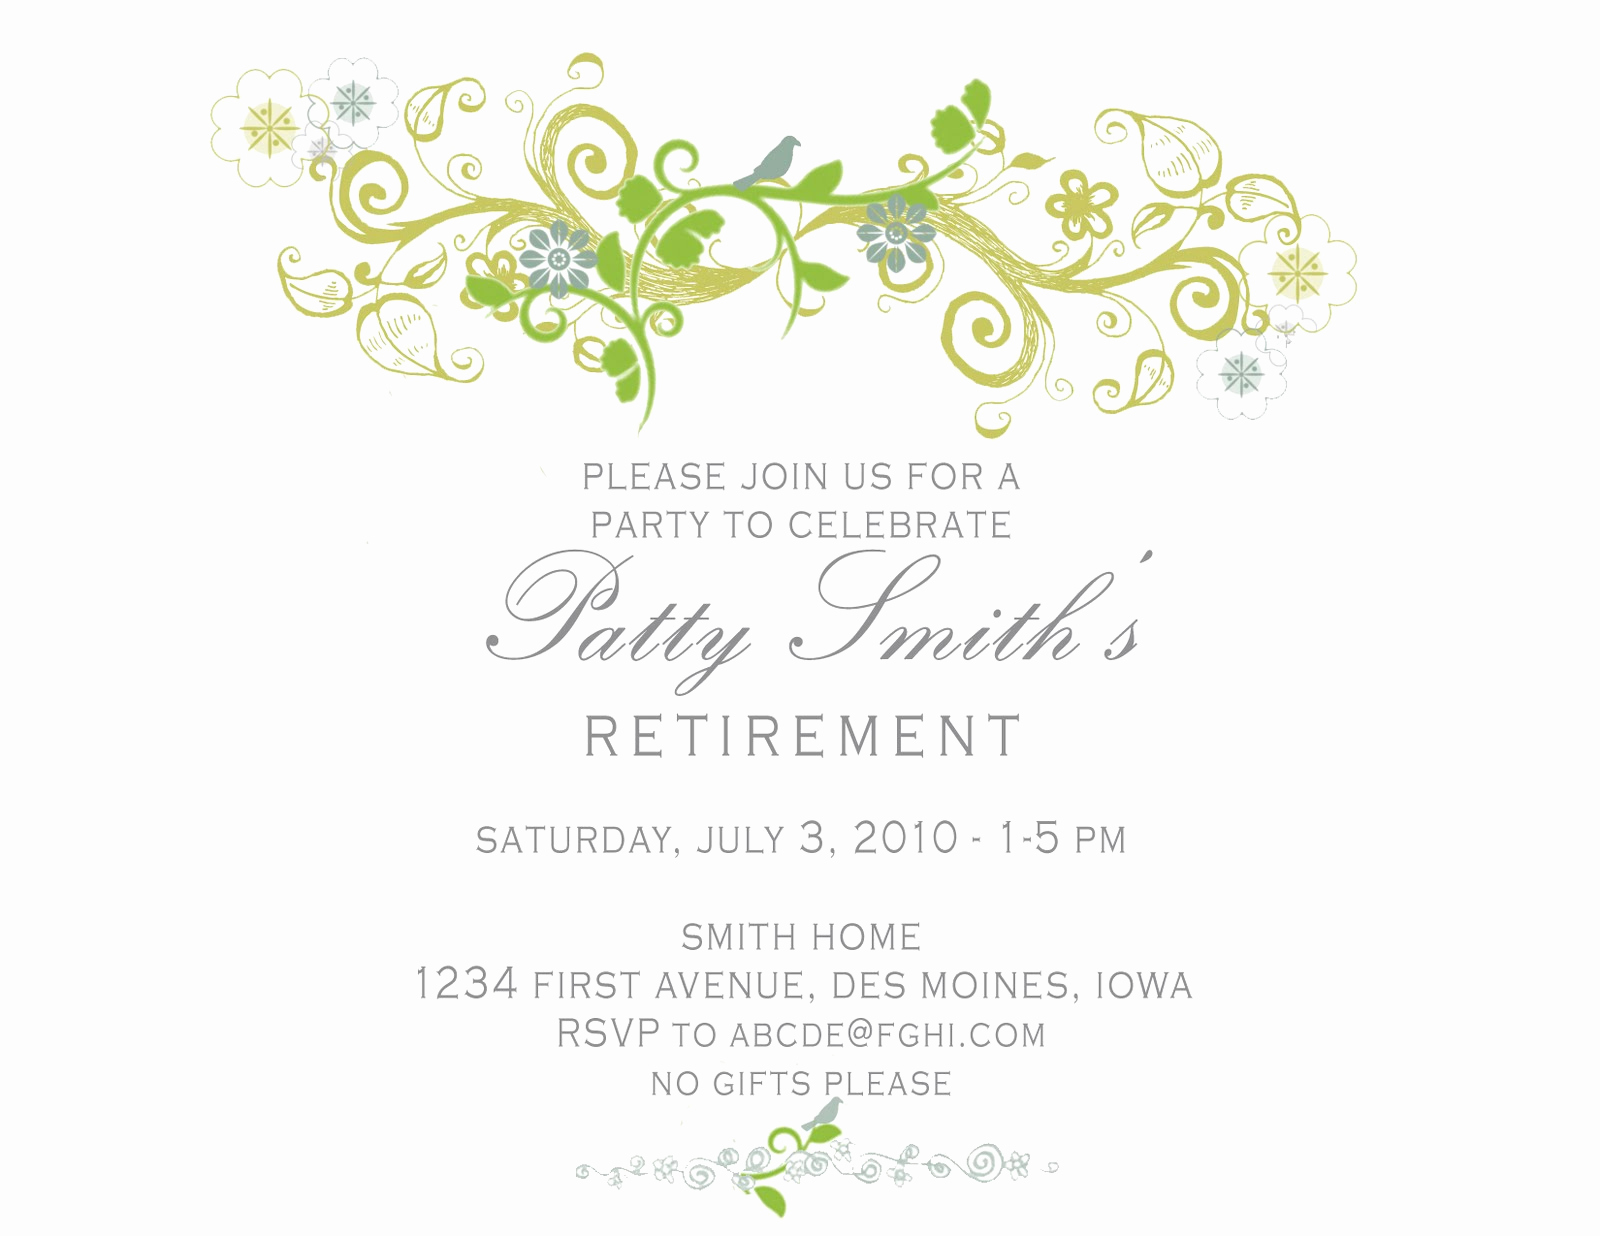 Retirement Party Invitations Template Elegant Idesign A Retirement Party Invitation